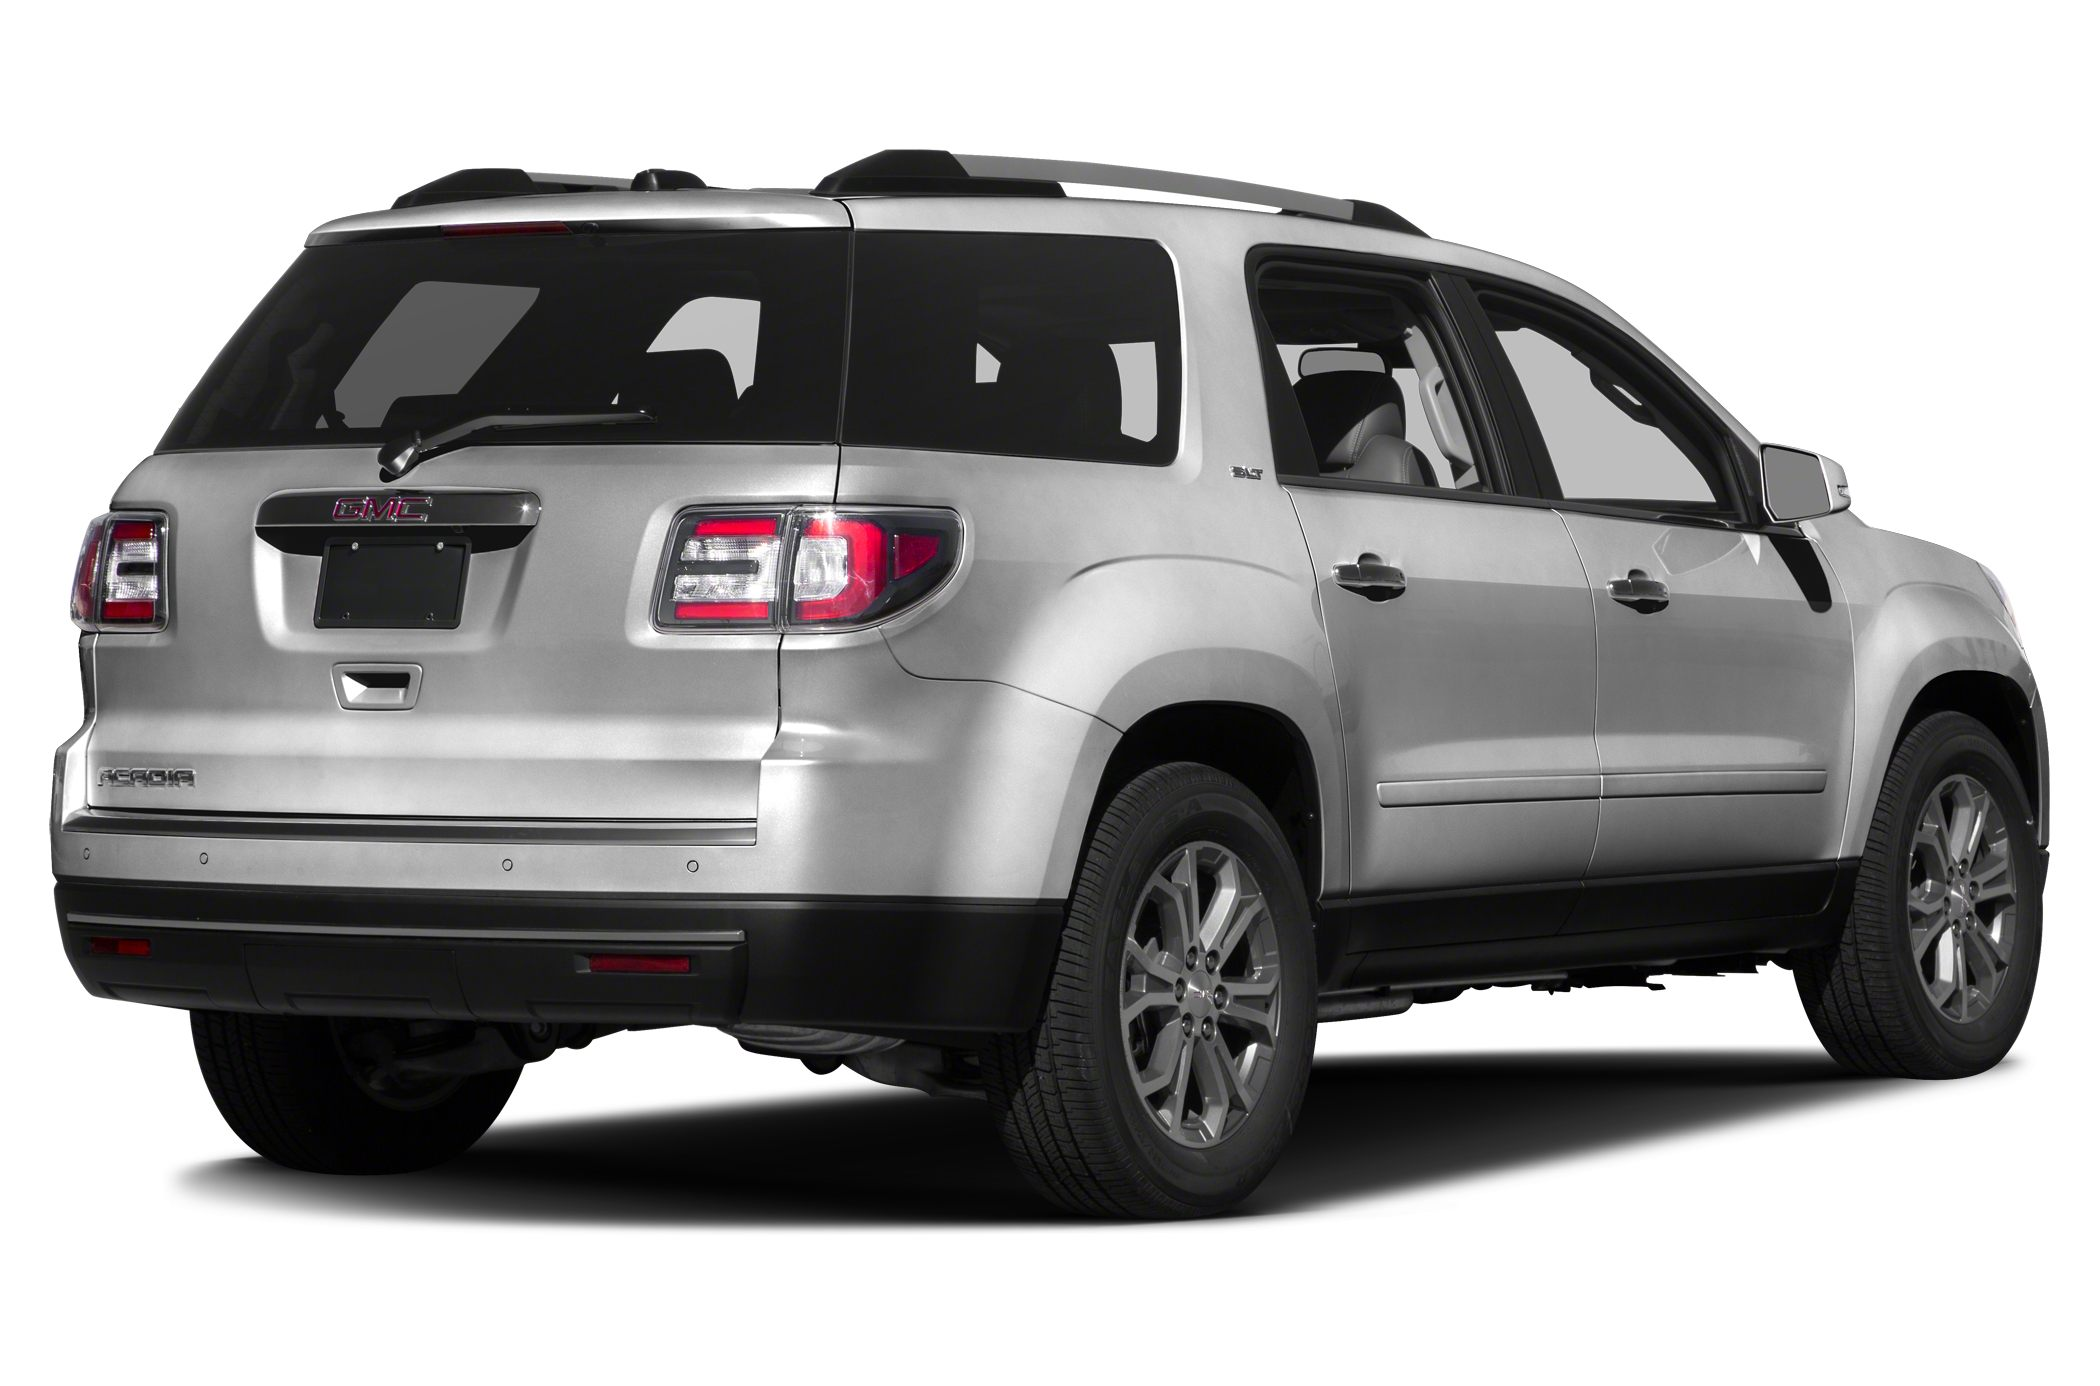 2017 GMC Acadia Limited Specs Safety Rating & MPG CarsDirect